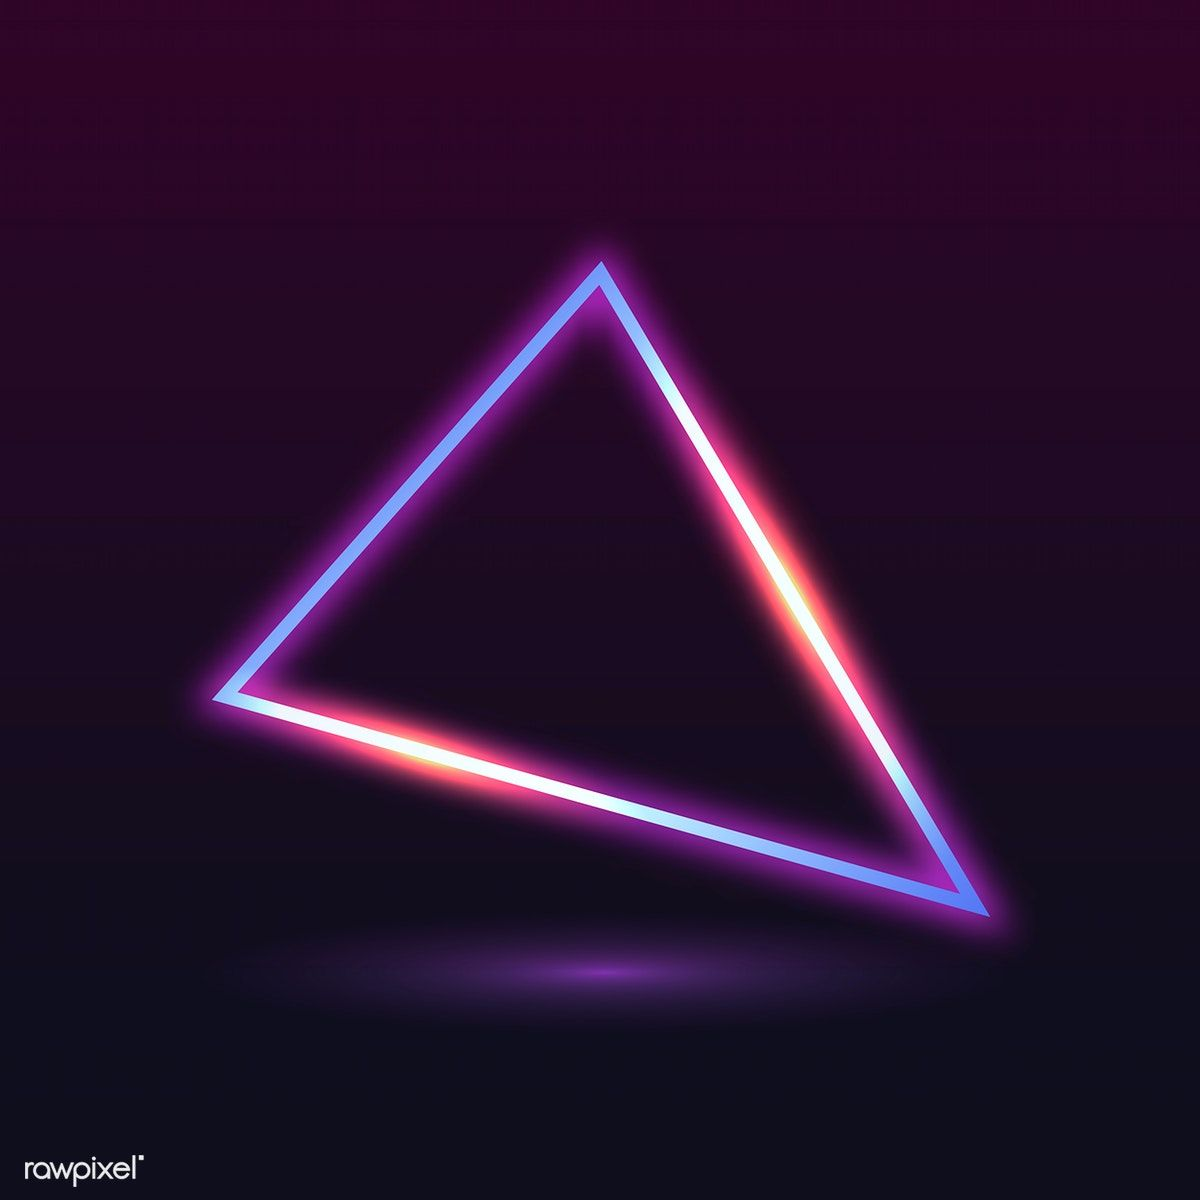 Retro Neon Triangle Badge Vector Free Image By Rawpixel Com Ningzk V Neon Vector Free Android Wallpaper Black